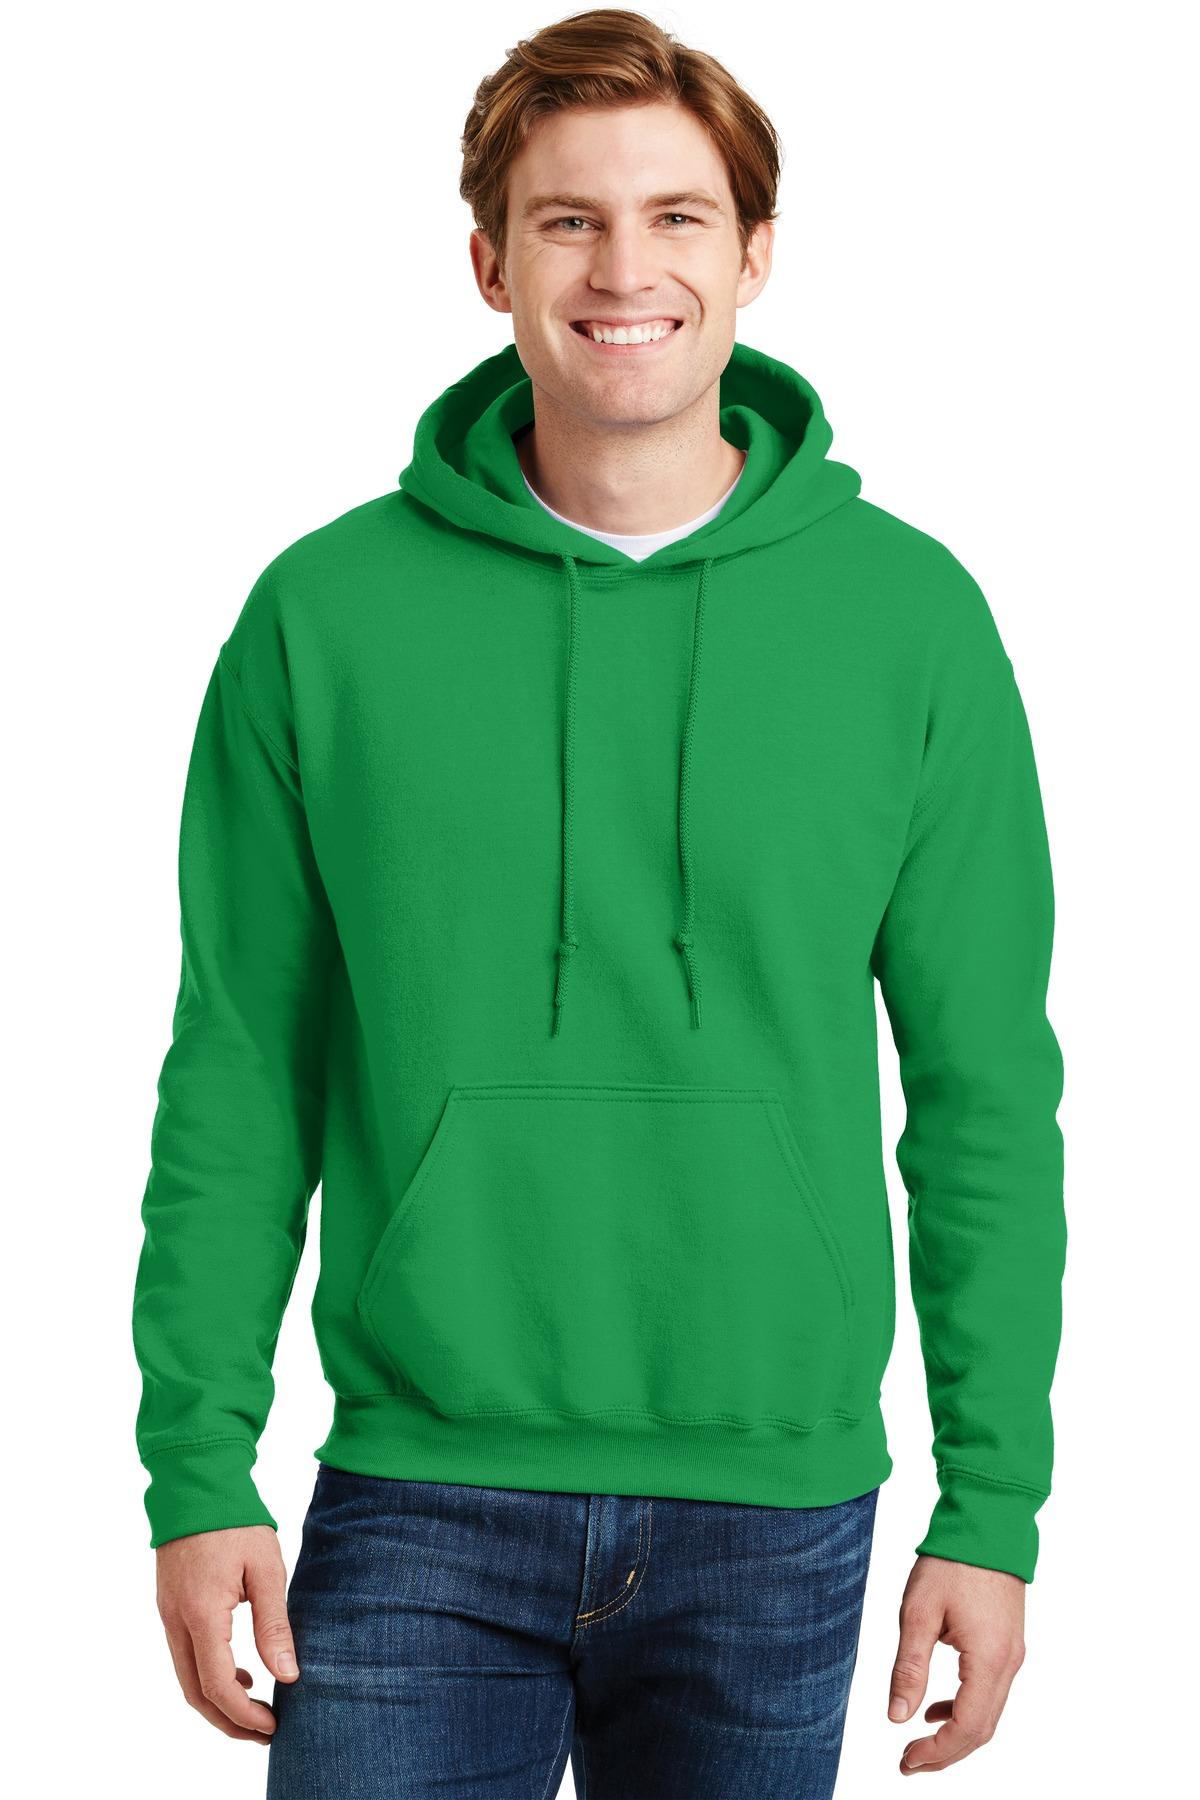 Gildan ®  - DryBlend ®  Pullover Hooded Sweatshirt.  12500 - Irish Green